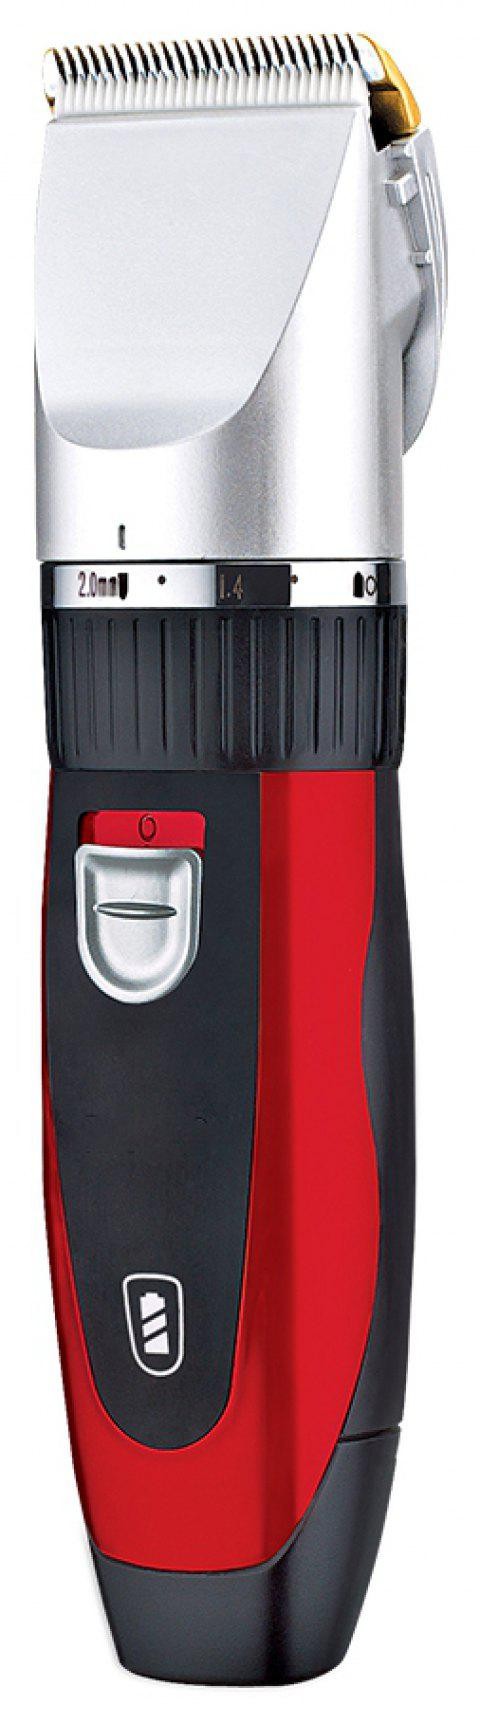 SURKER Electric Hair Clipper Ceramic Cutter Head Detachable Battery - RED WINE